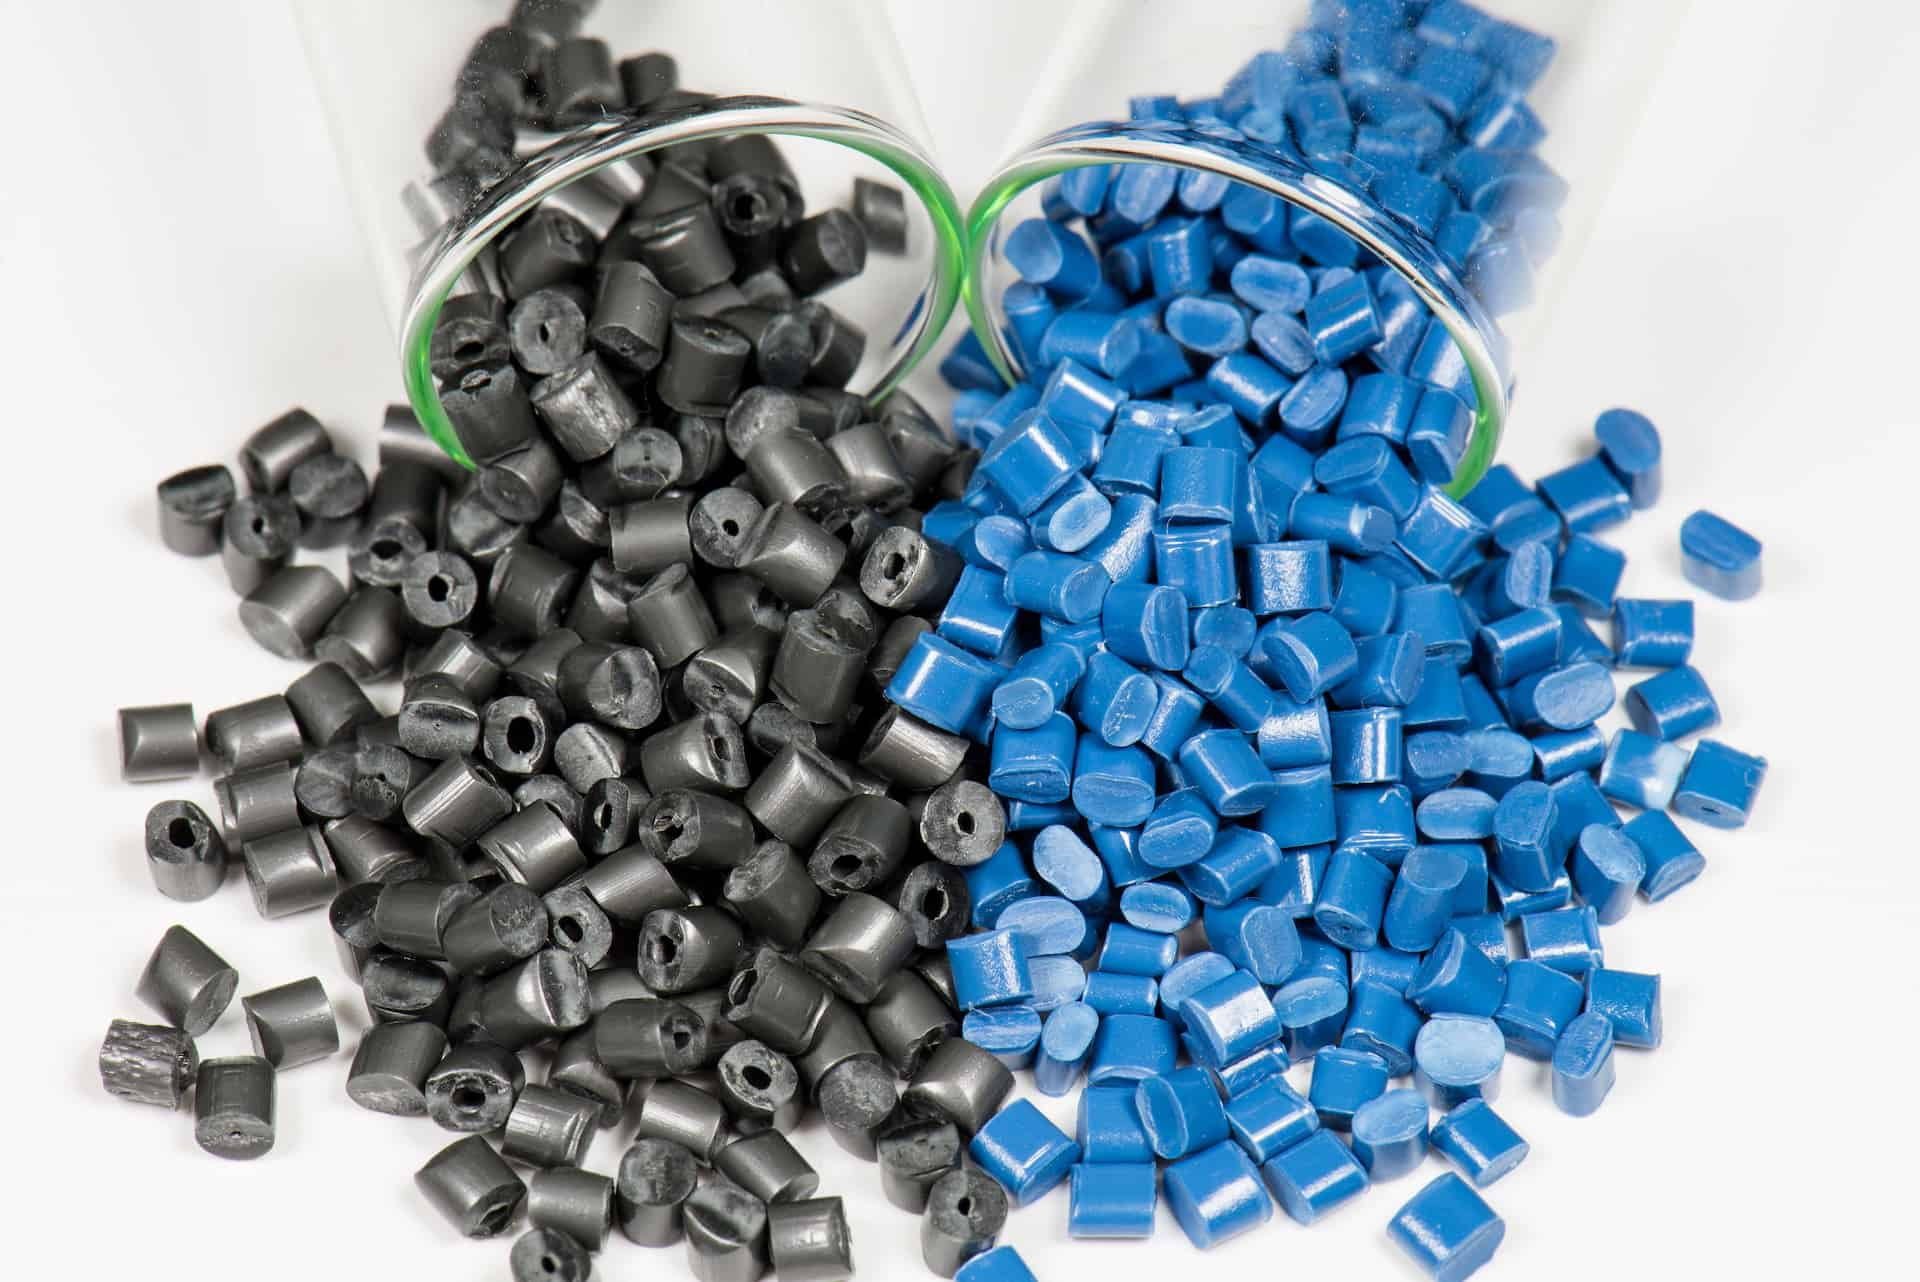 Plastic nibs for rubber and plastic fabrication and injection molding